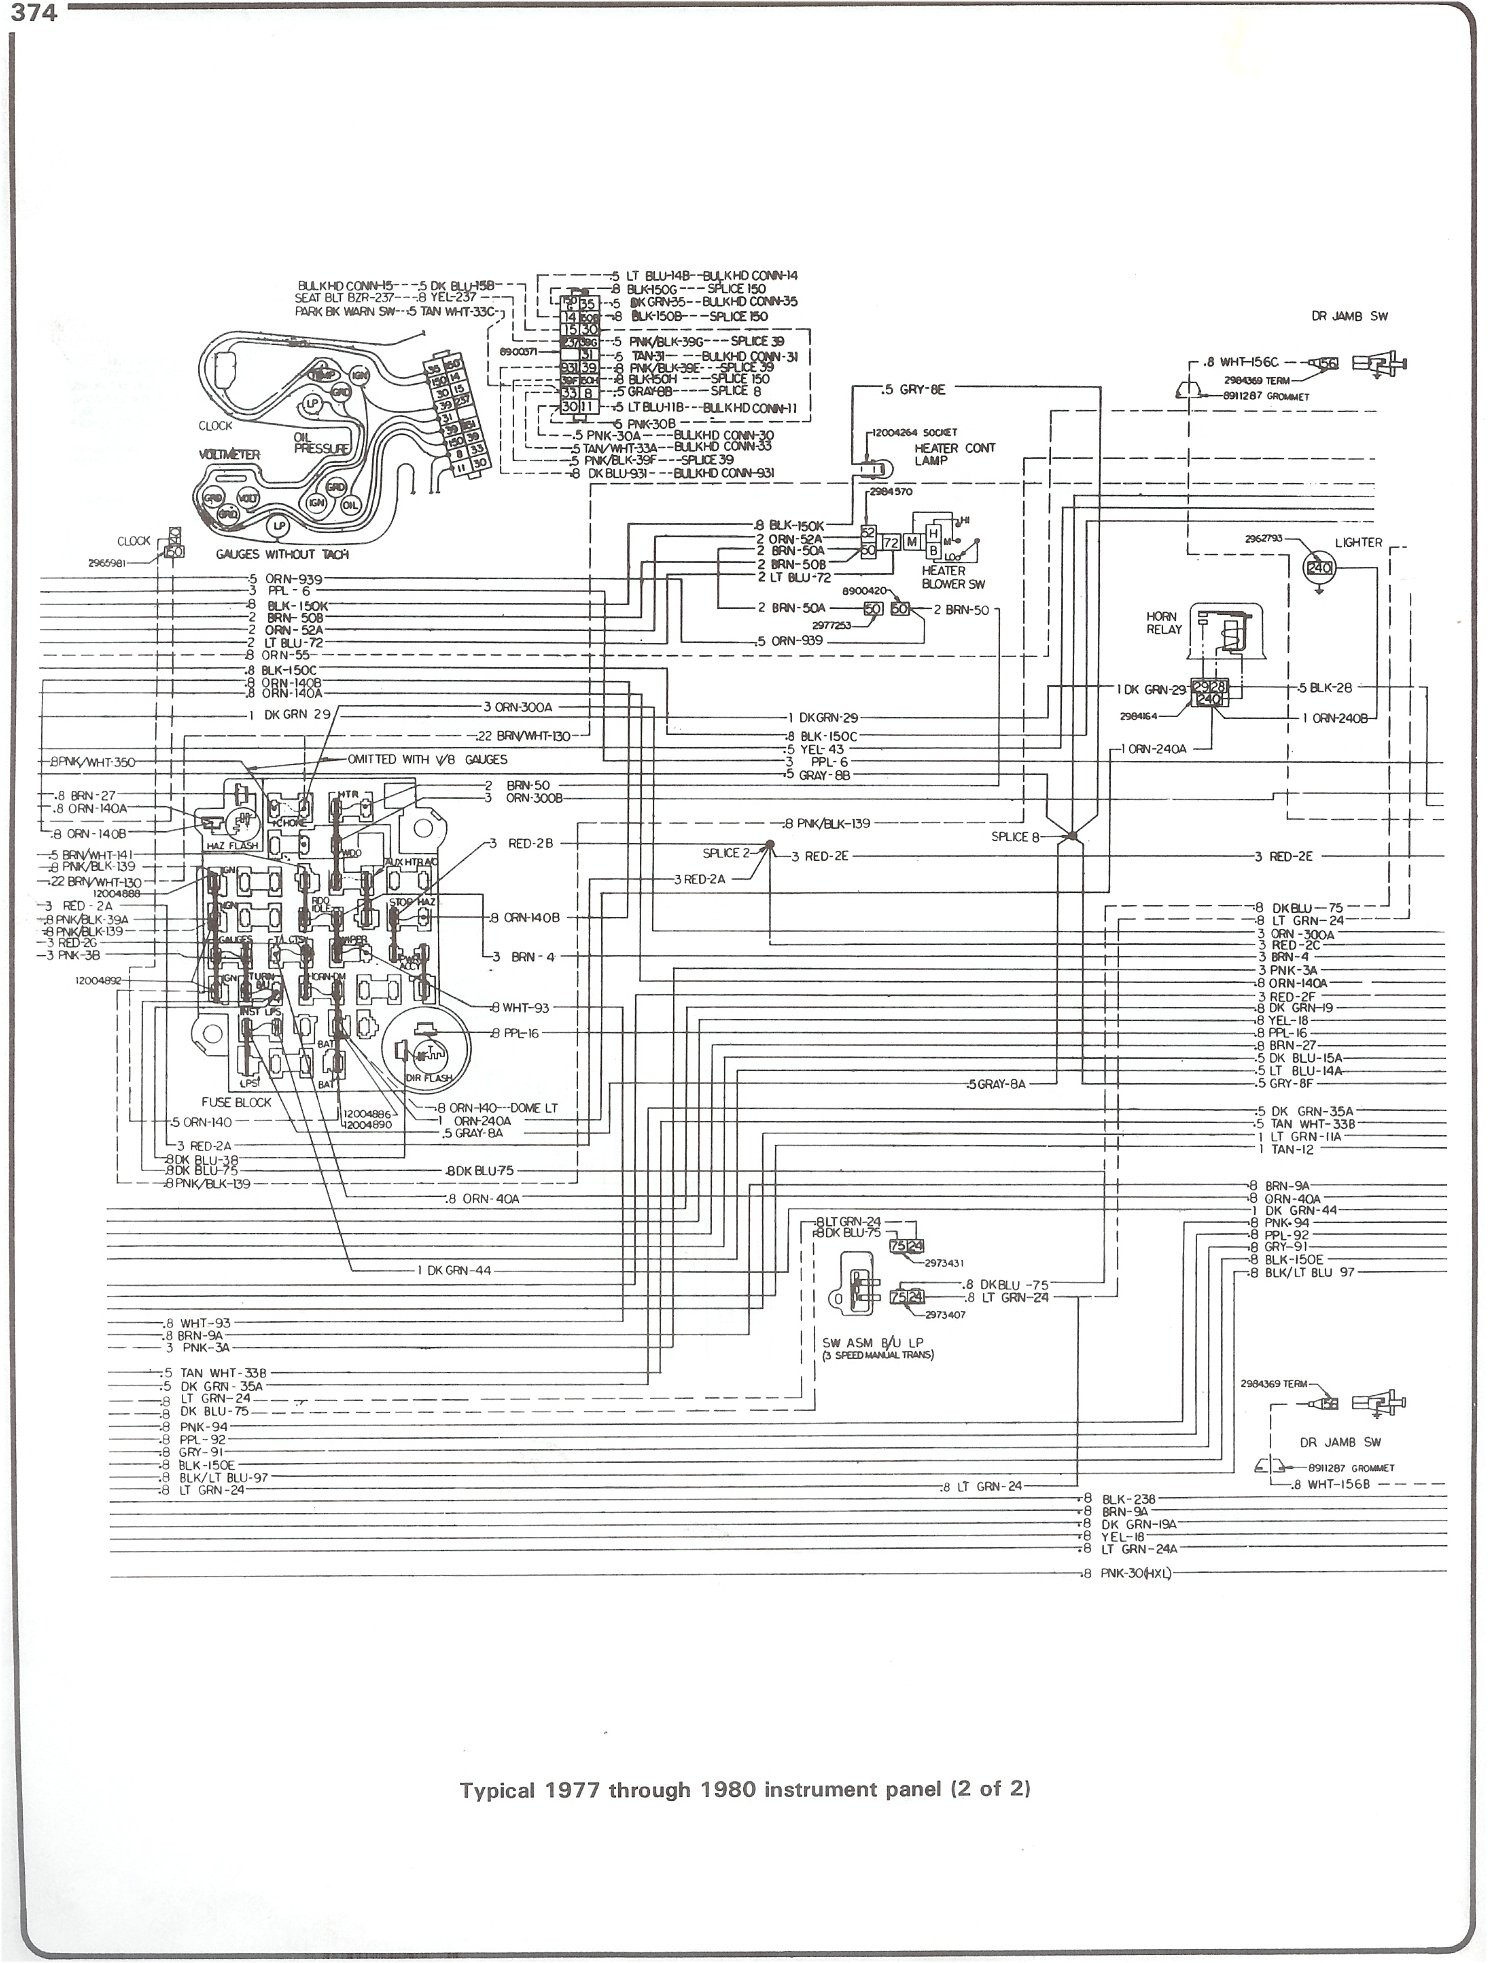 Jaguar Xj6 Wiring Diagram On Ignition Switch Wiring Diagram 87 Jaguar